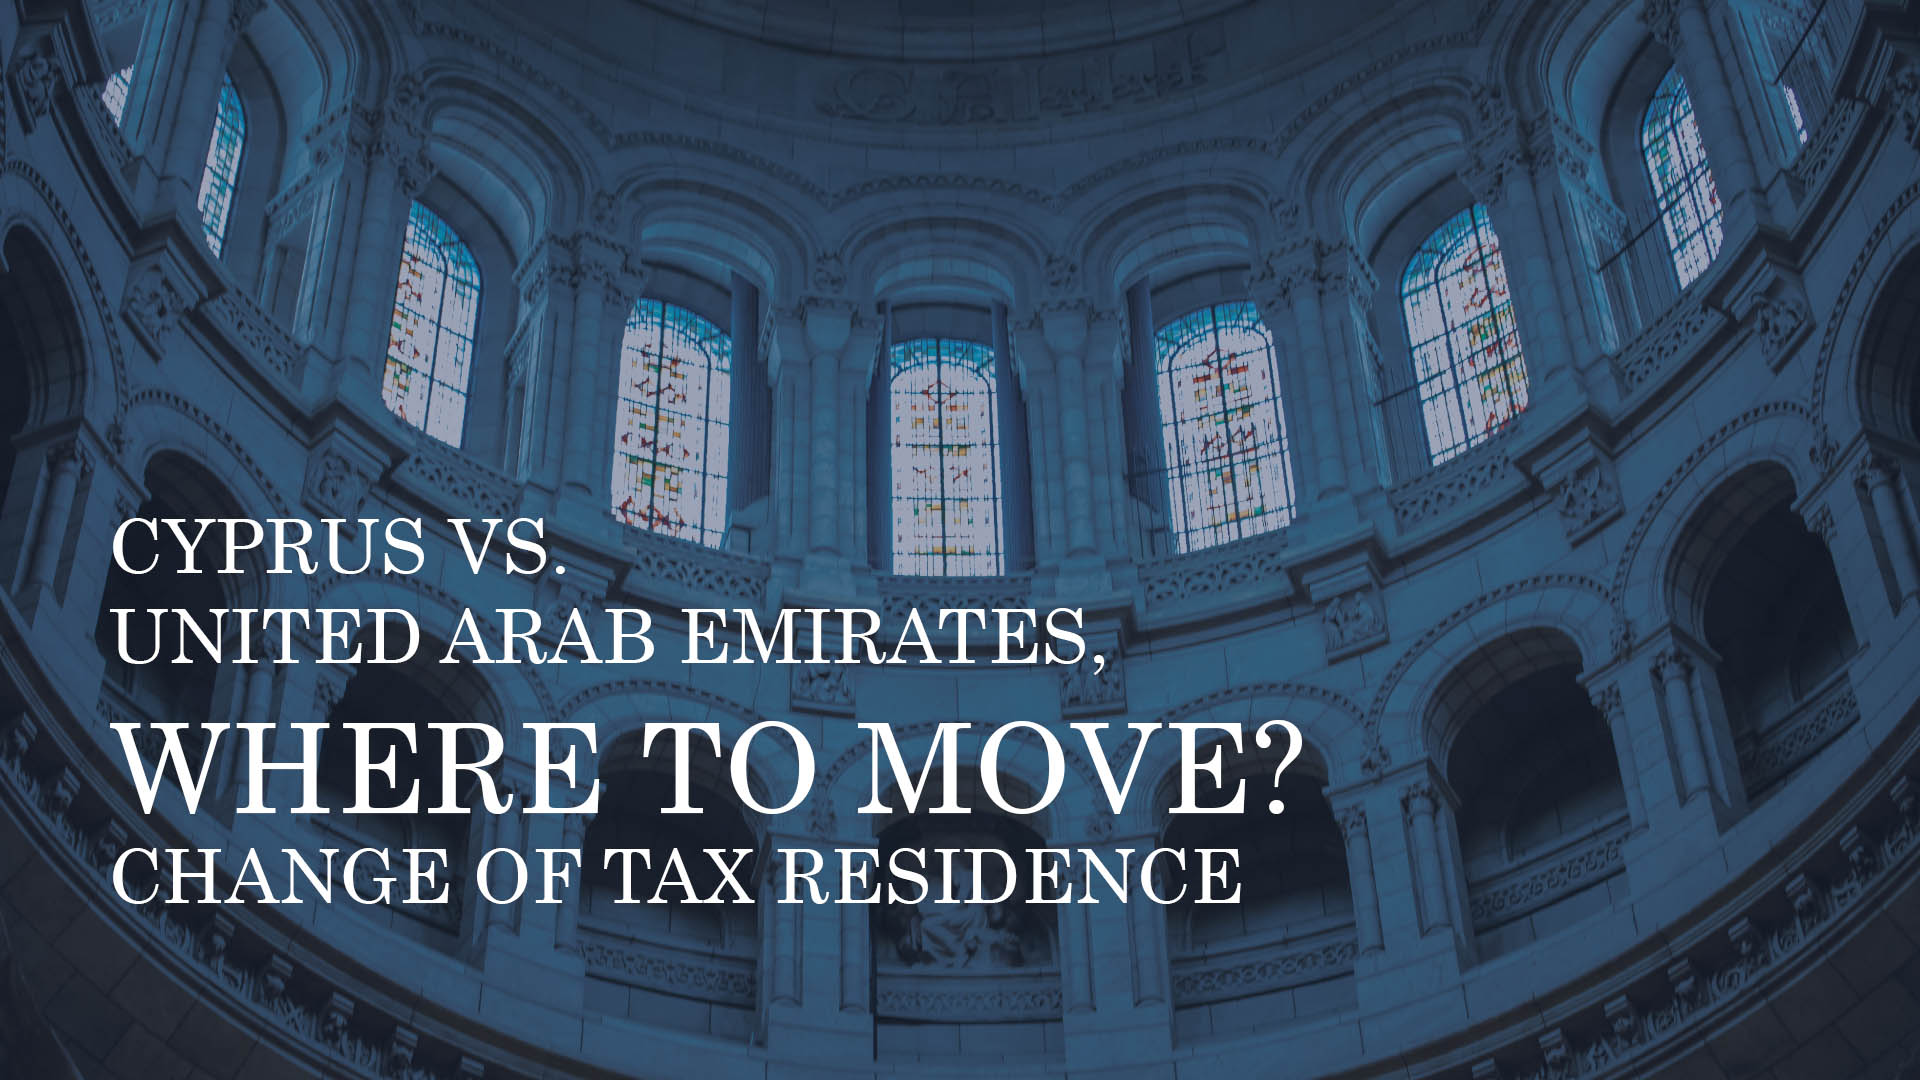 CYPRUS VS. UNITED ARAB EMIRATES WHERE TO MOVE CHANGE OF TAX RESIDENCE